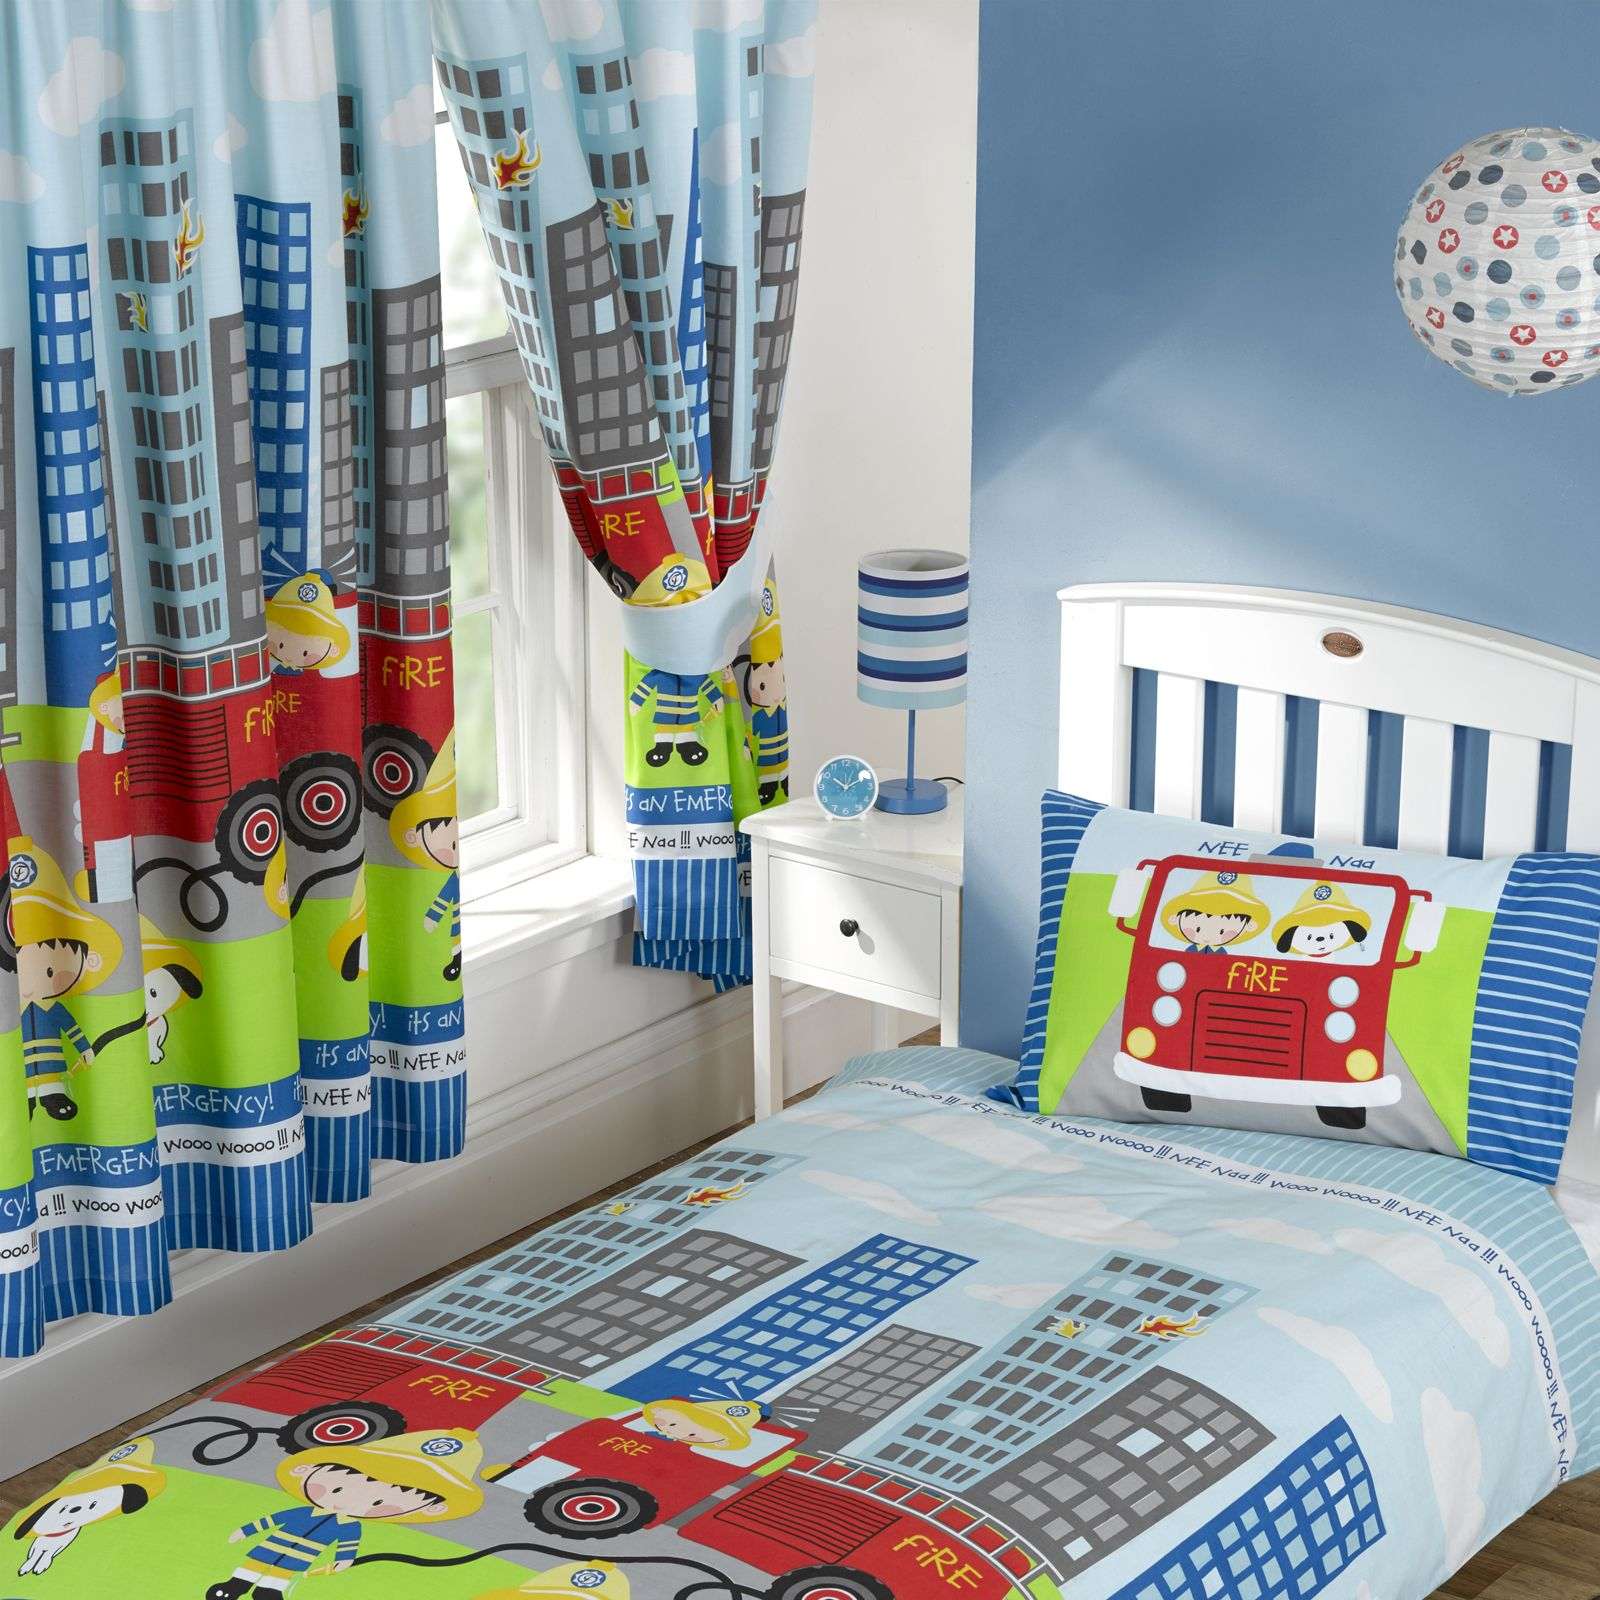 baby ideas ireland year curtains bedroom argos boy color old handsome themes bedrooms childrens decor boys cool